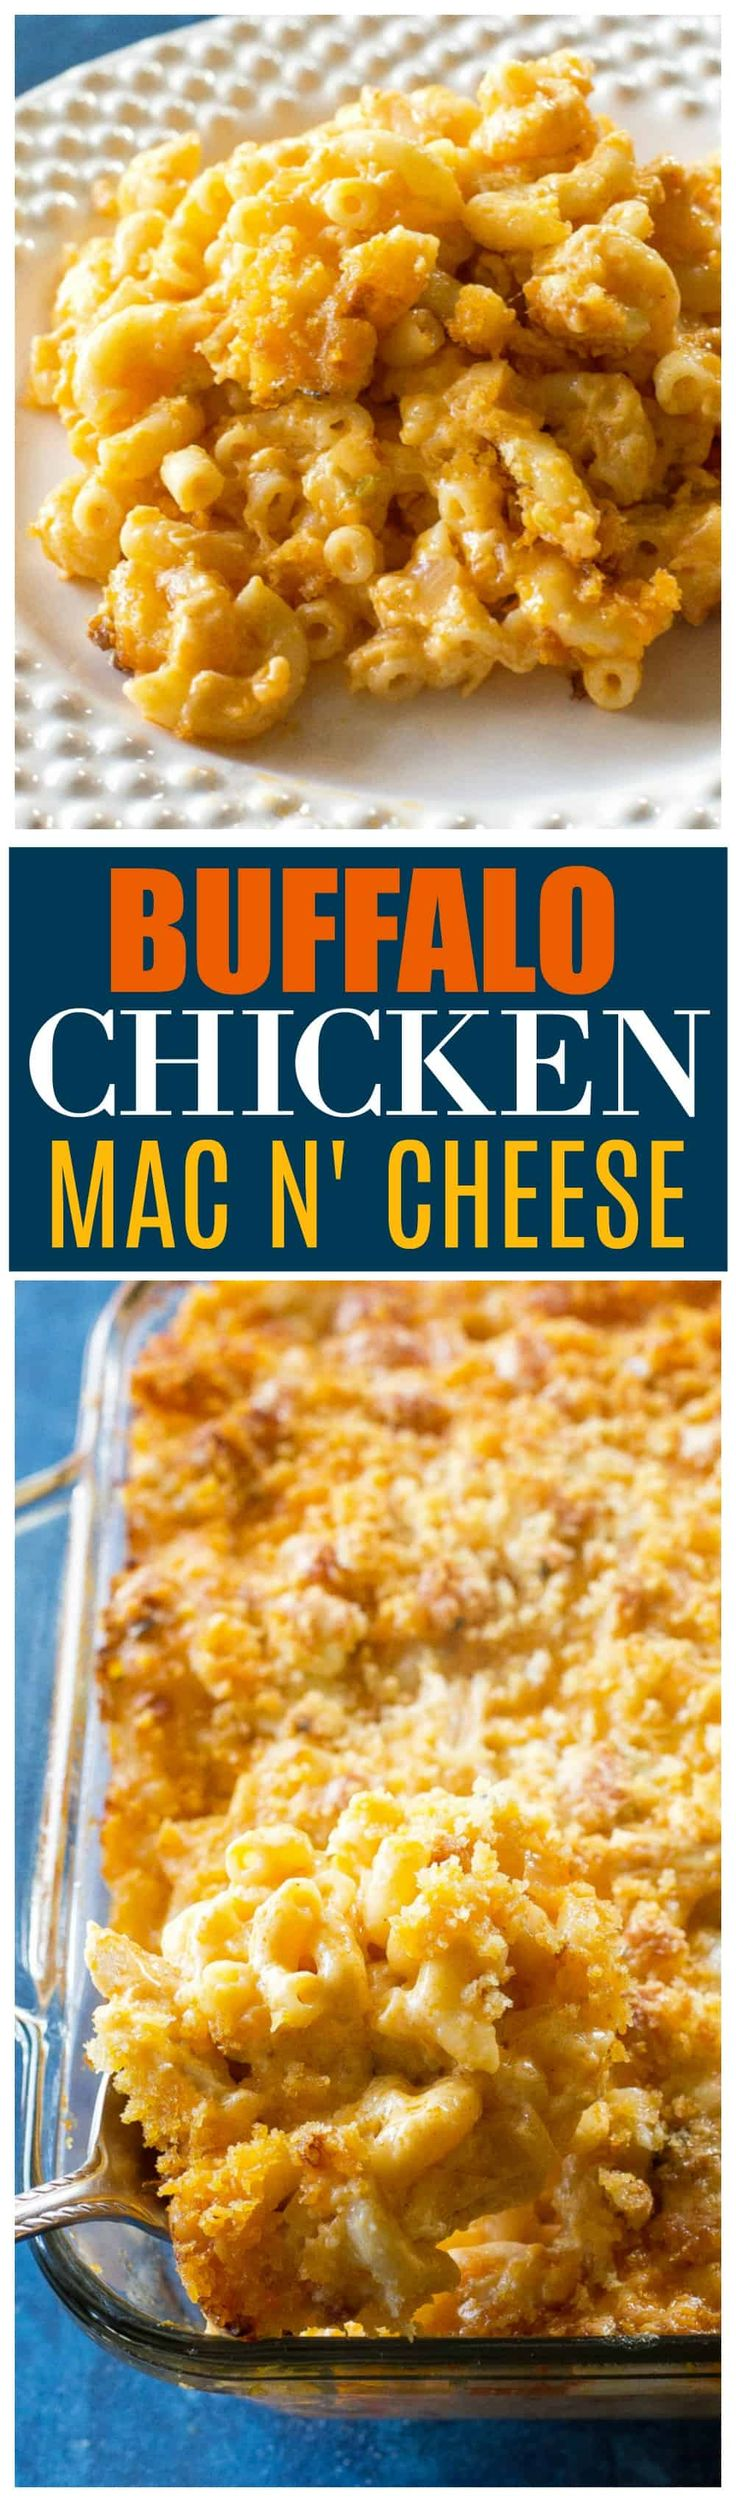 Buffalo Chicken Macaroni and Cheese - spicy, cheesy macaroni and cheese with a blue cheese crust on top. the-girl-who-ate-everything.com